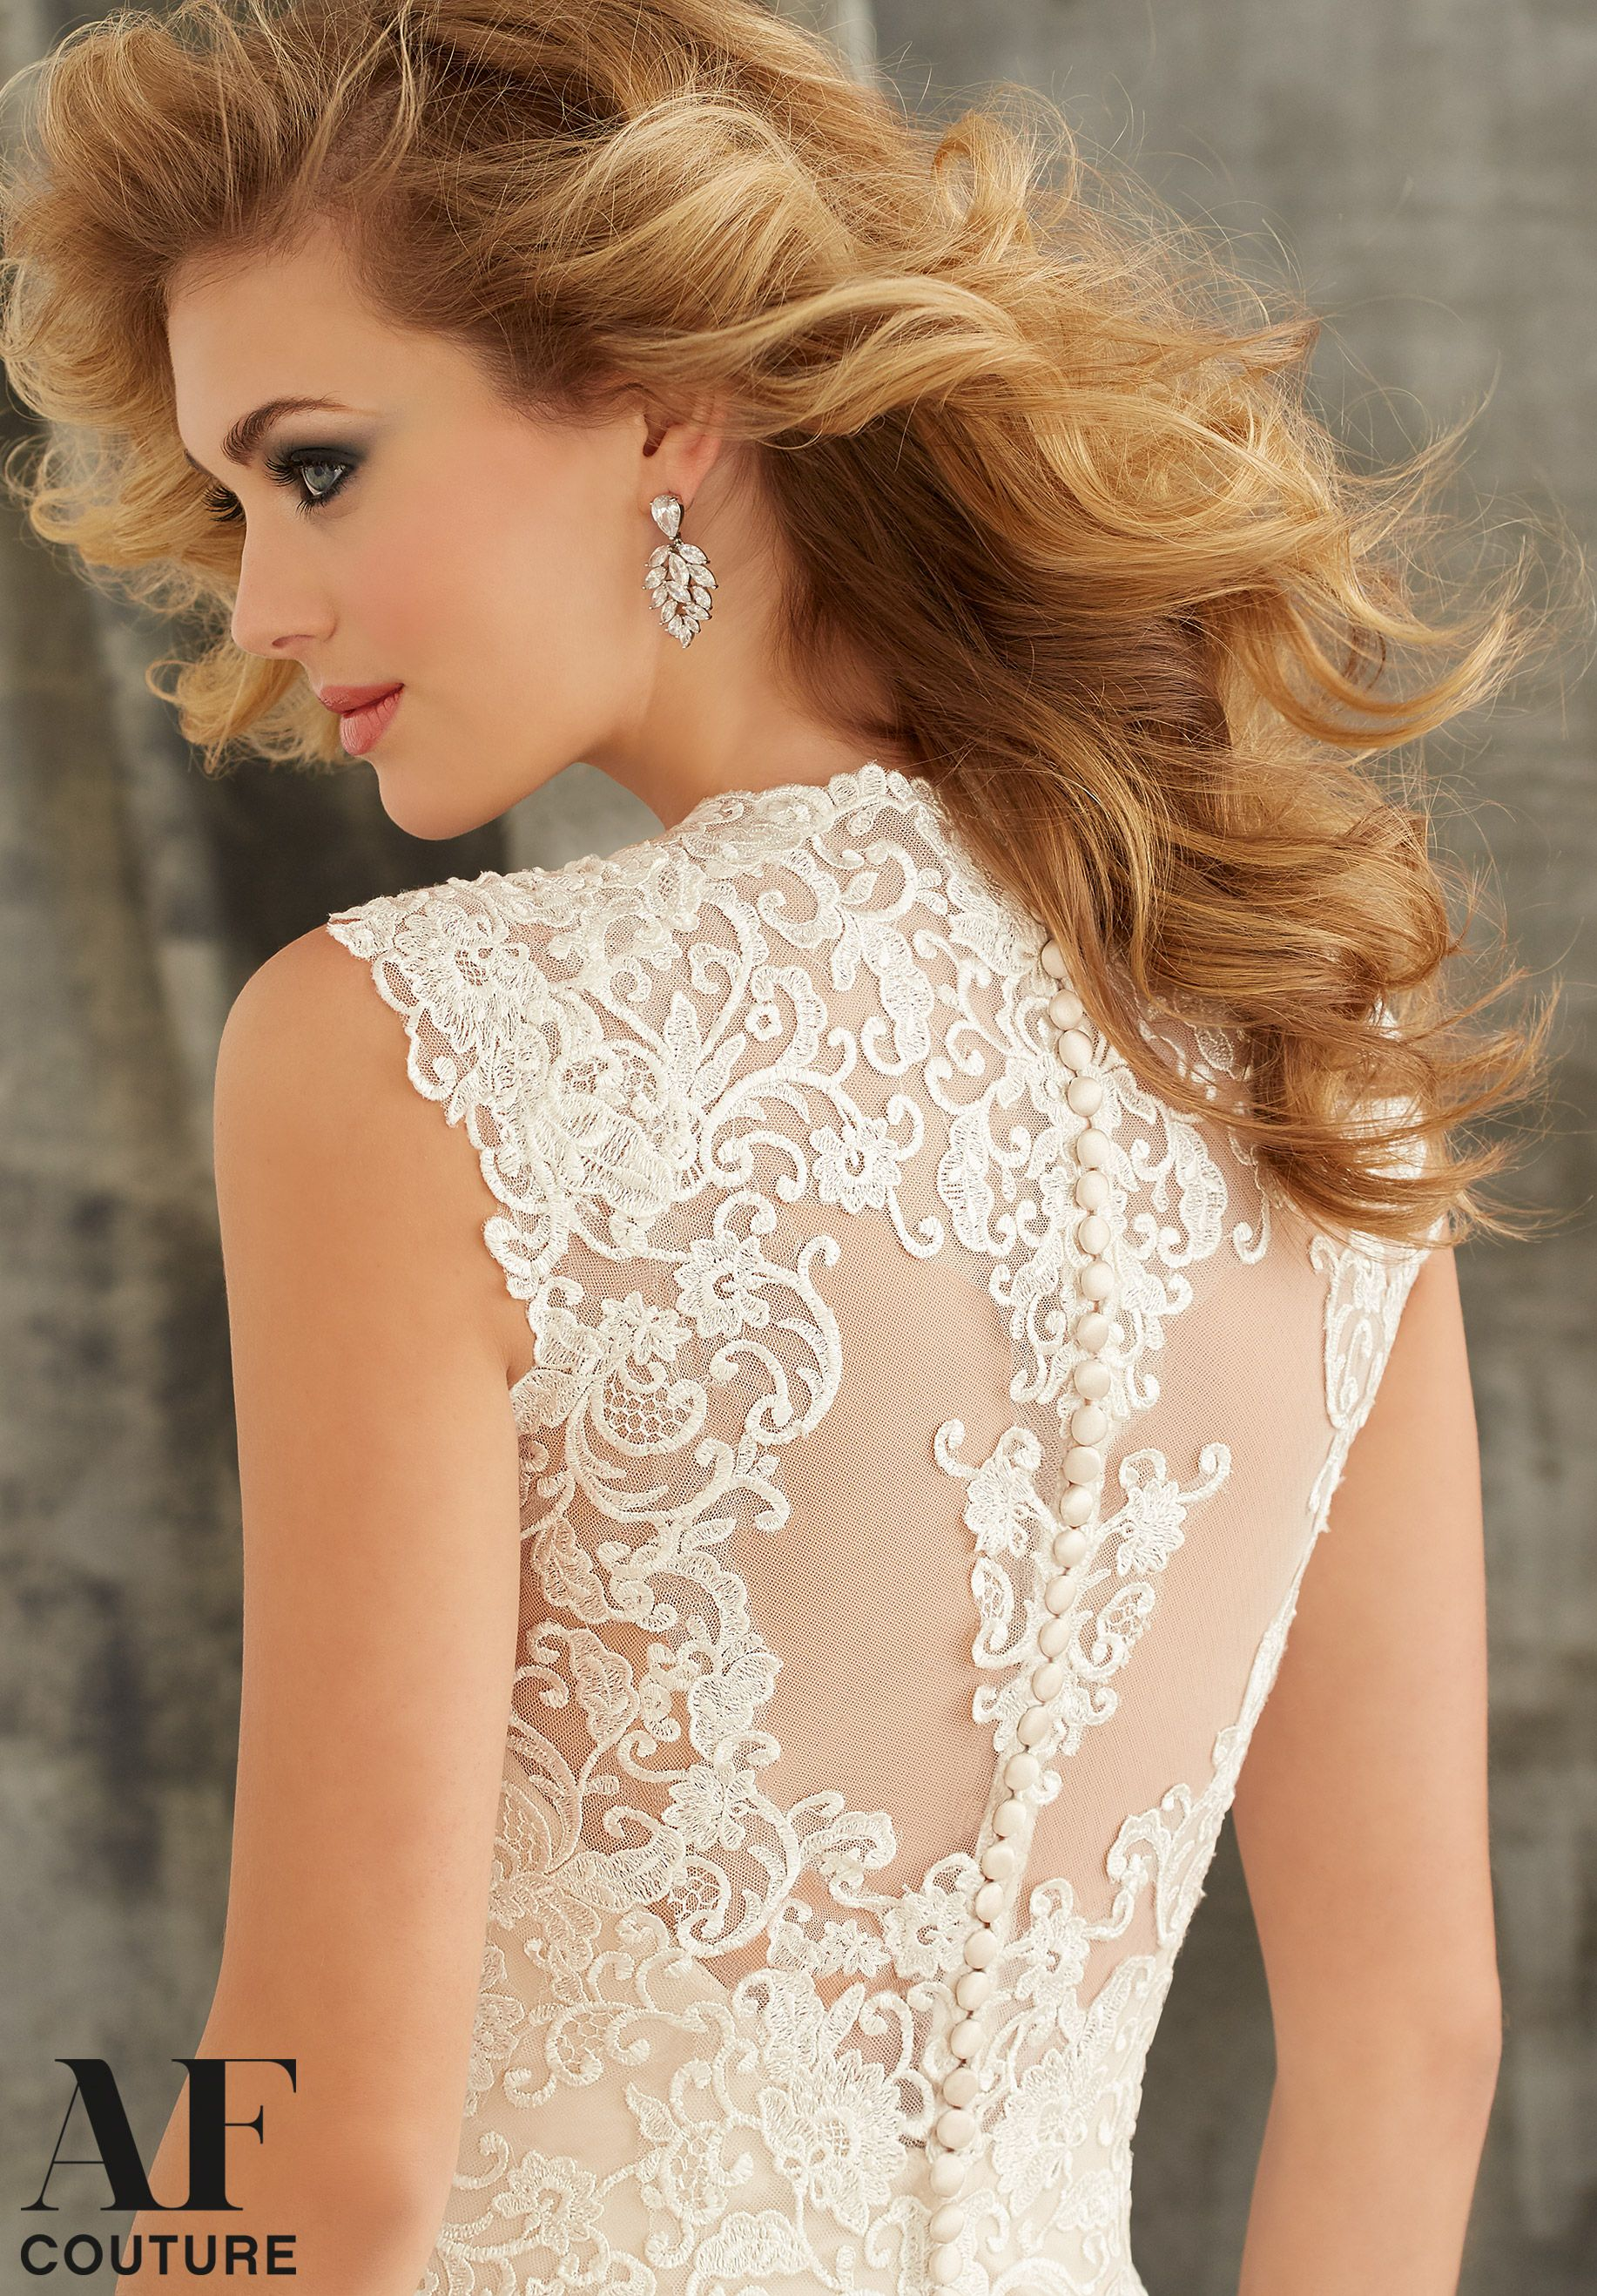 Spectacular bridal dress embroidered appliques on tulle with wide